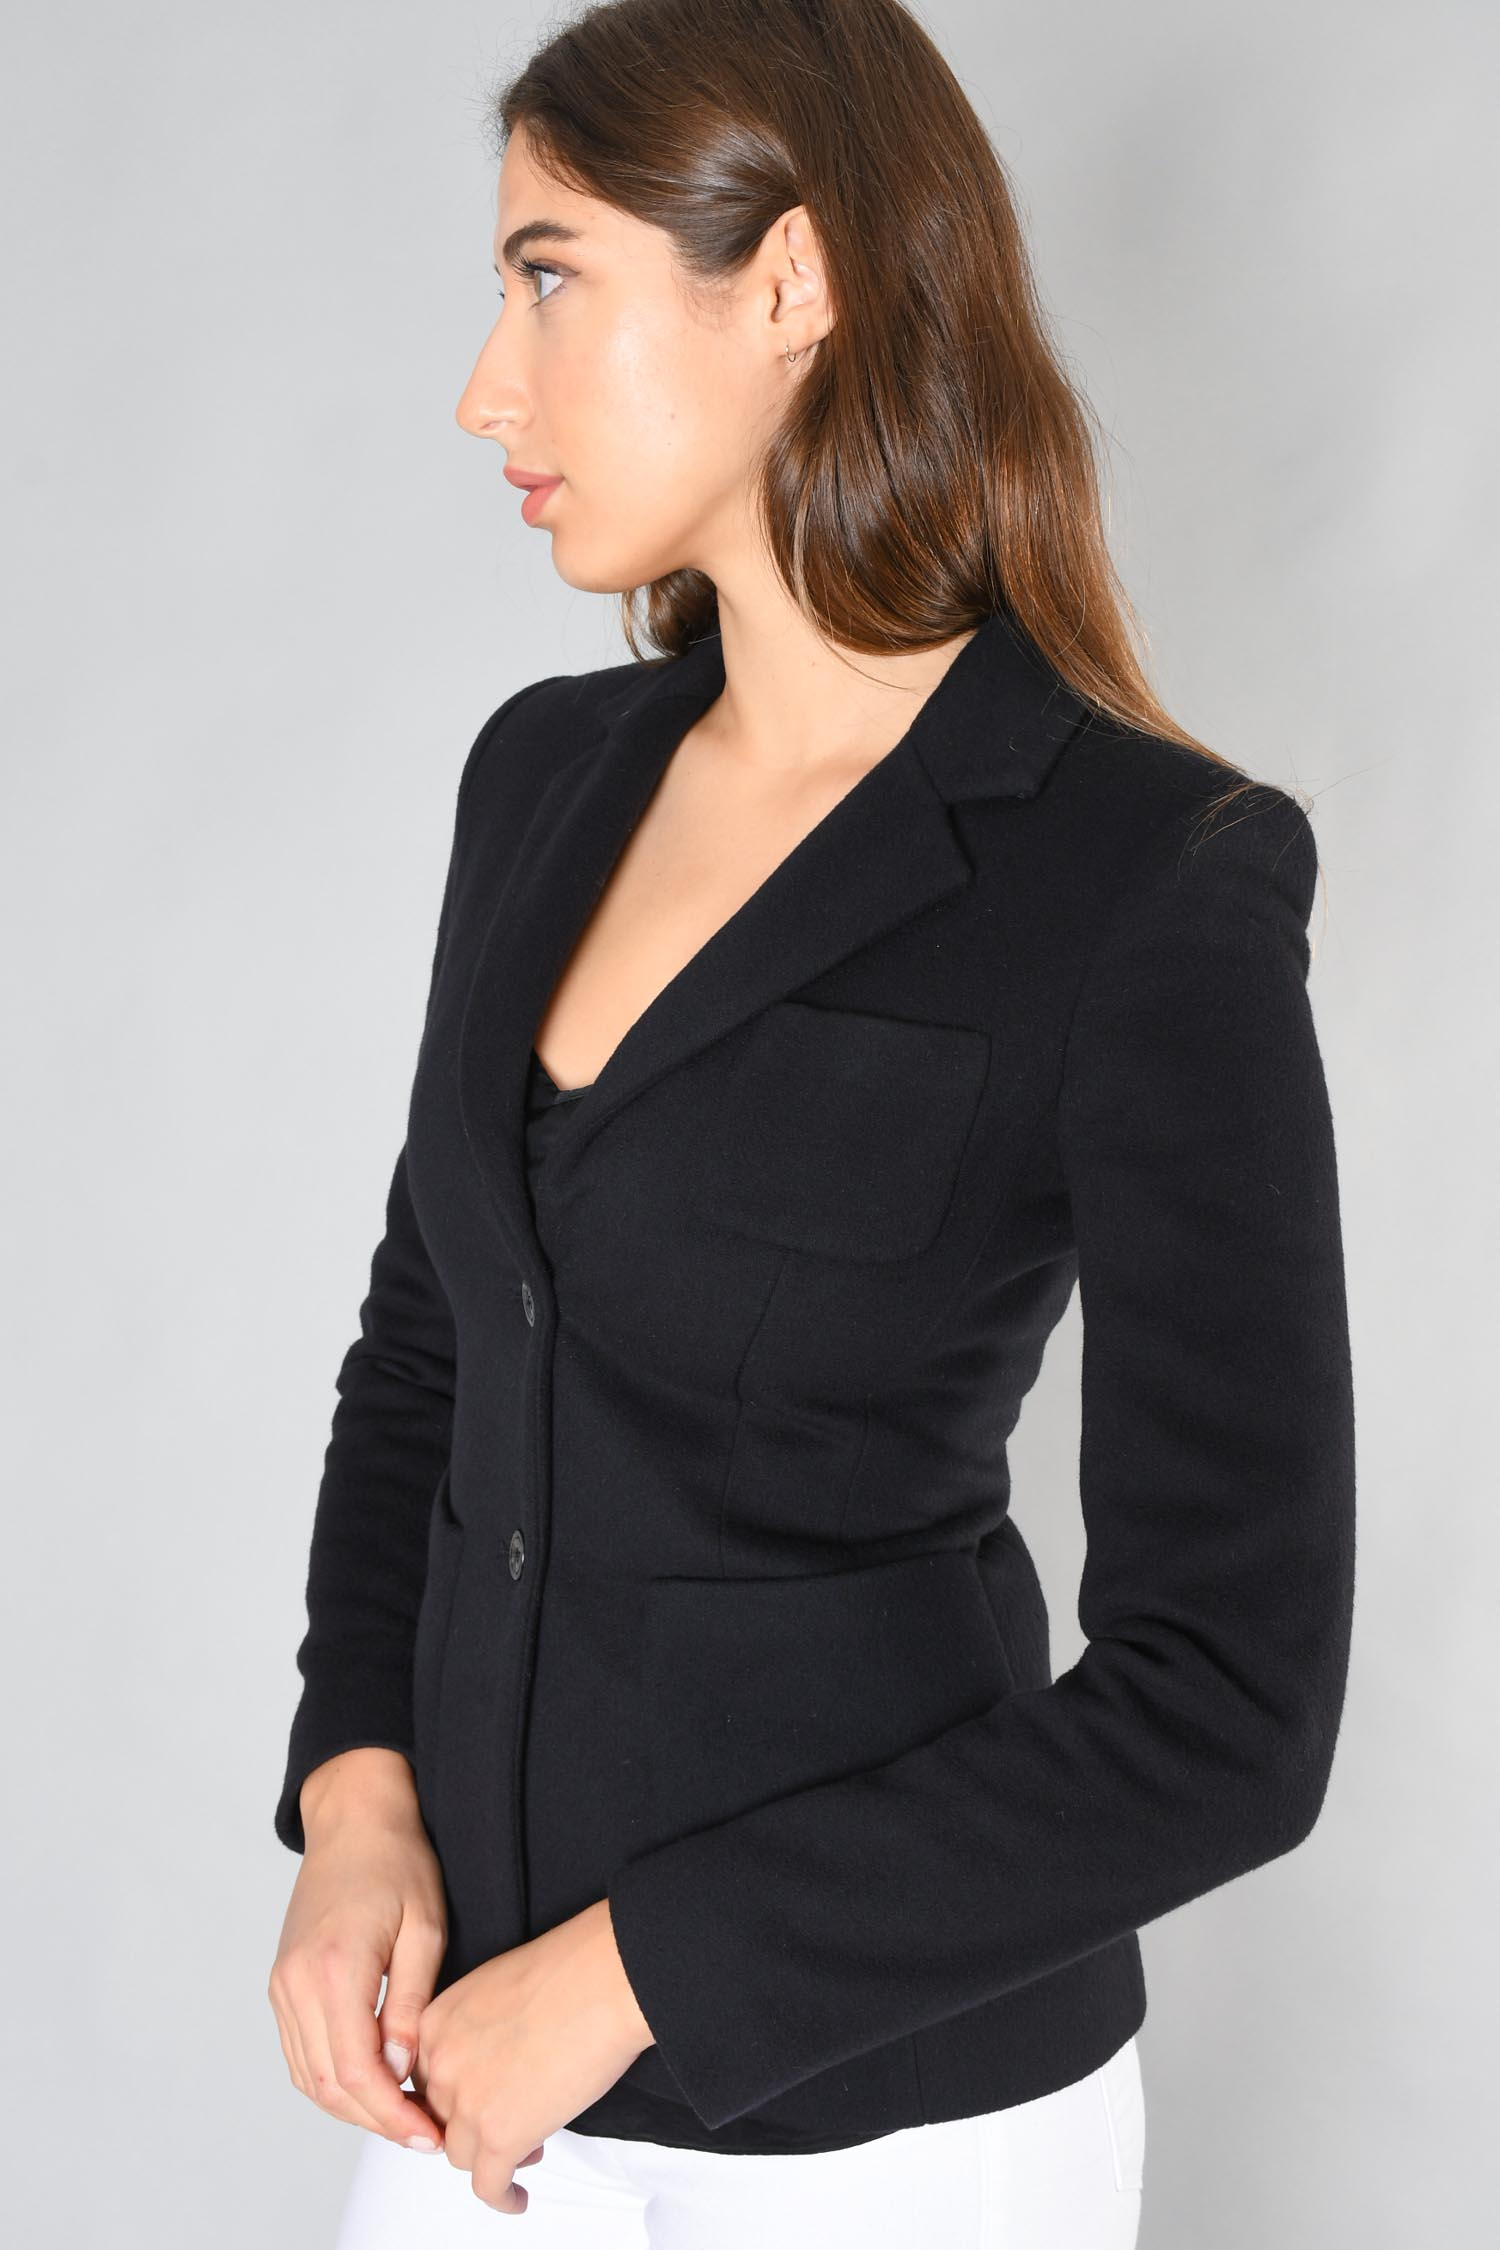 The Row Navy Wool Jacket Size 2